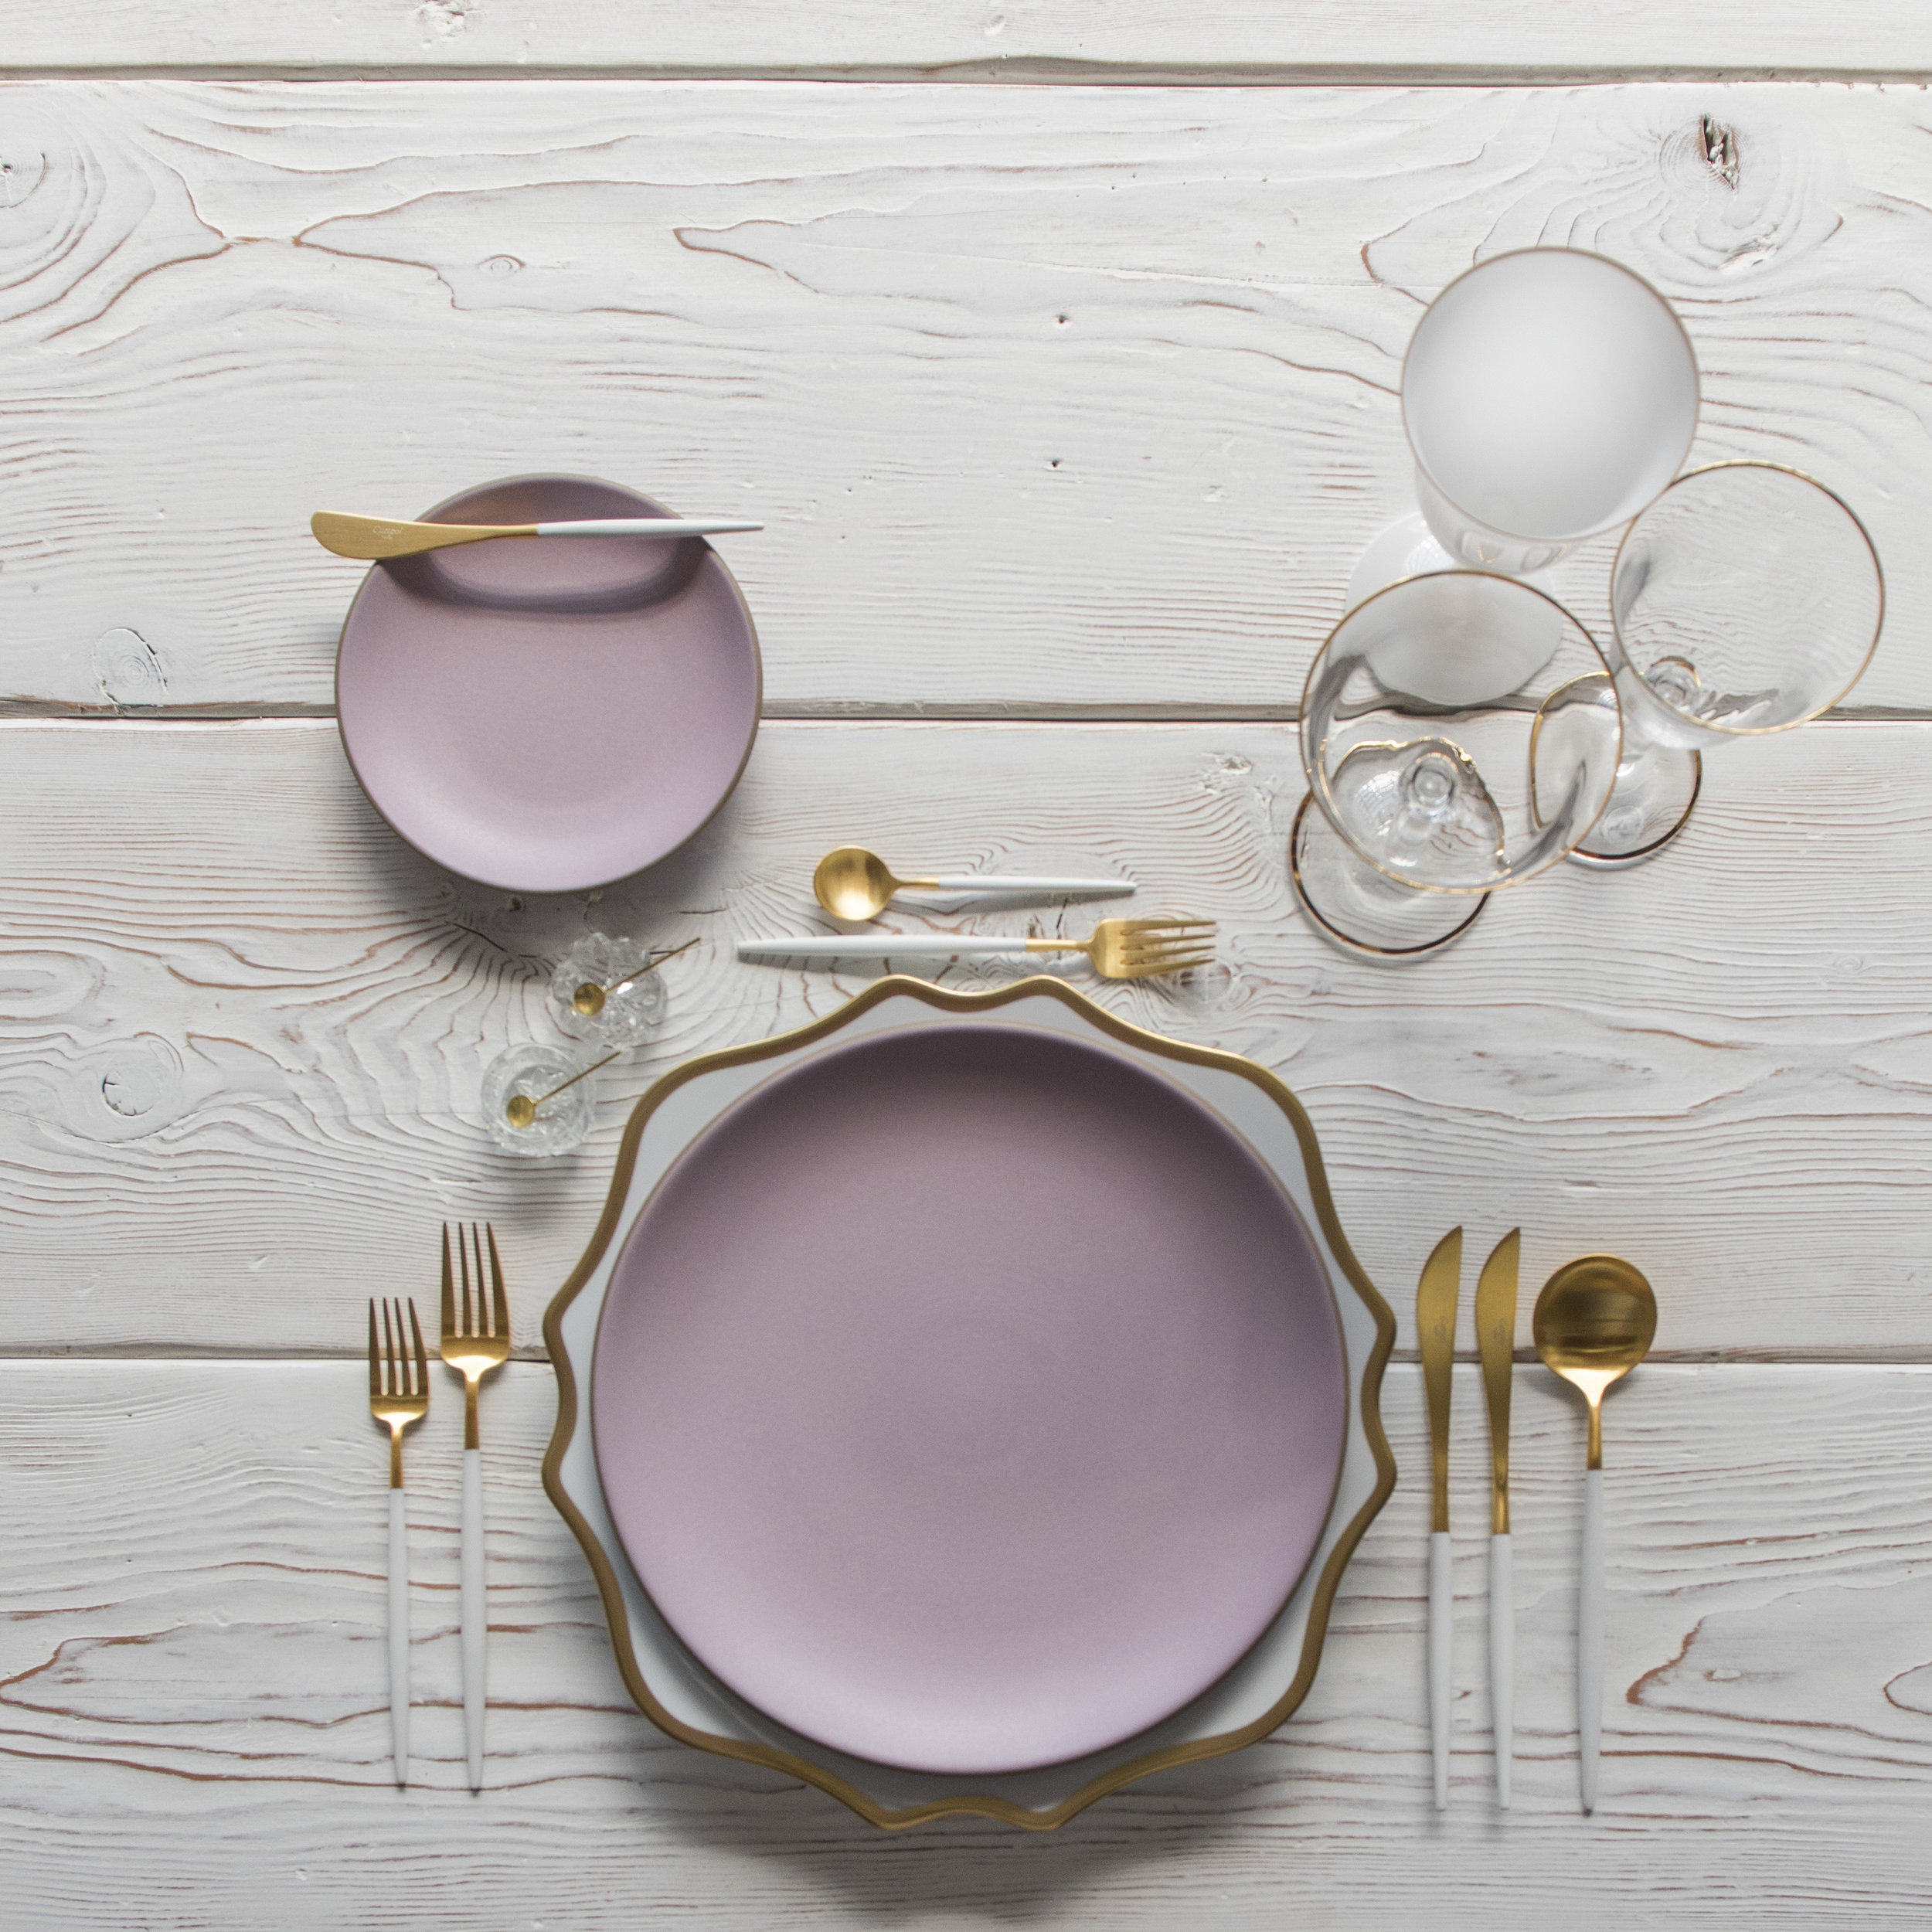 RENT: Anna Weatherley Chargers in White/Gold + Custom Heath Ceramics in Wildflower + Goa Flatware in Brushed 24k Gold/White + Chloe 24k Gold Rimmed Stemware + Chloe 24k Gold Rimmed Goblet in White + Antique Crystal Salt Cellars + Tiny Gold Spoons  SHOP:Anna Weatherley Chargers in White/Gold + Goa Flatware in Brushed 24k Gold/White + Chloe 24k Gold Rimmed Stemware + Tiny Gold Spoons